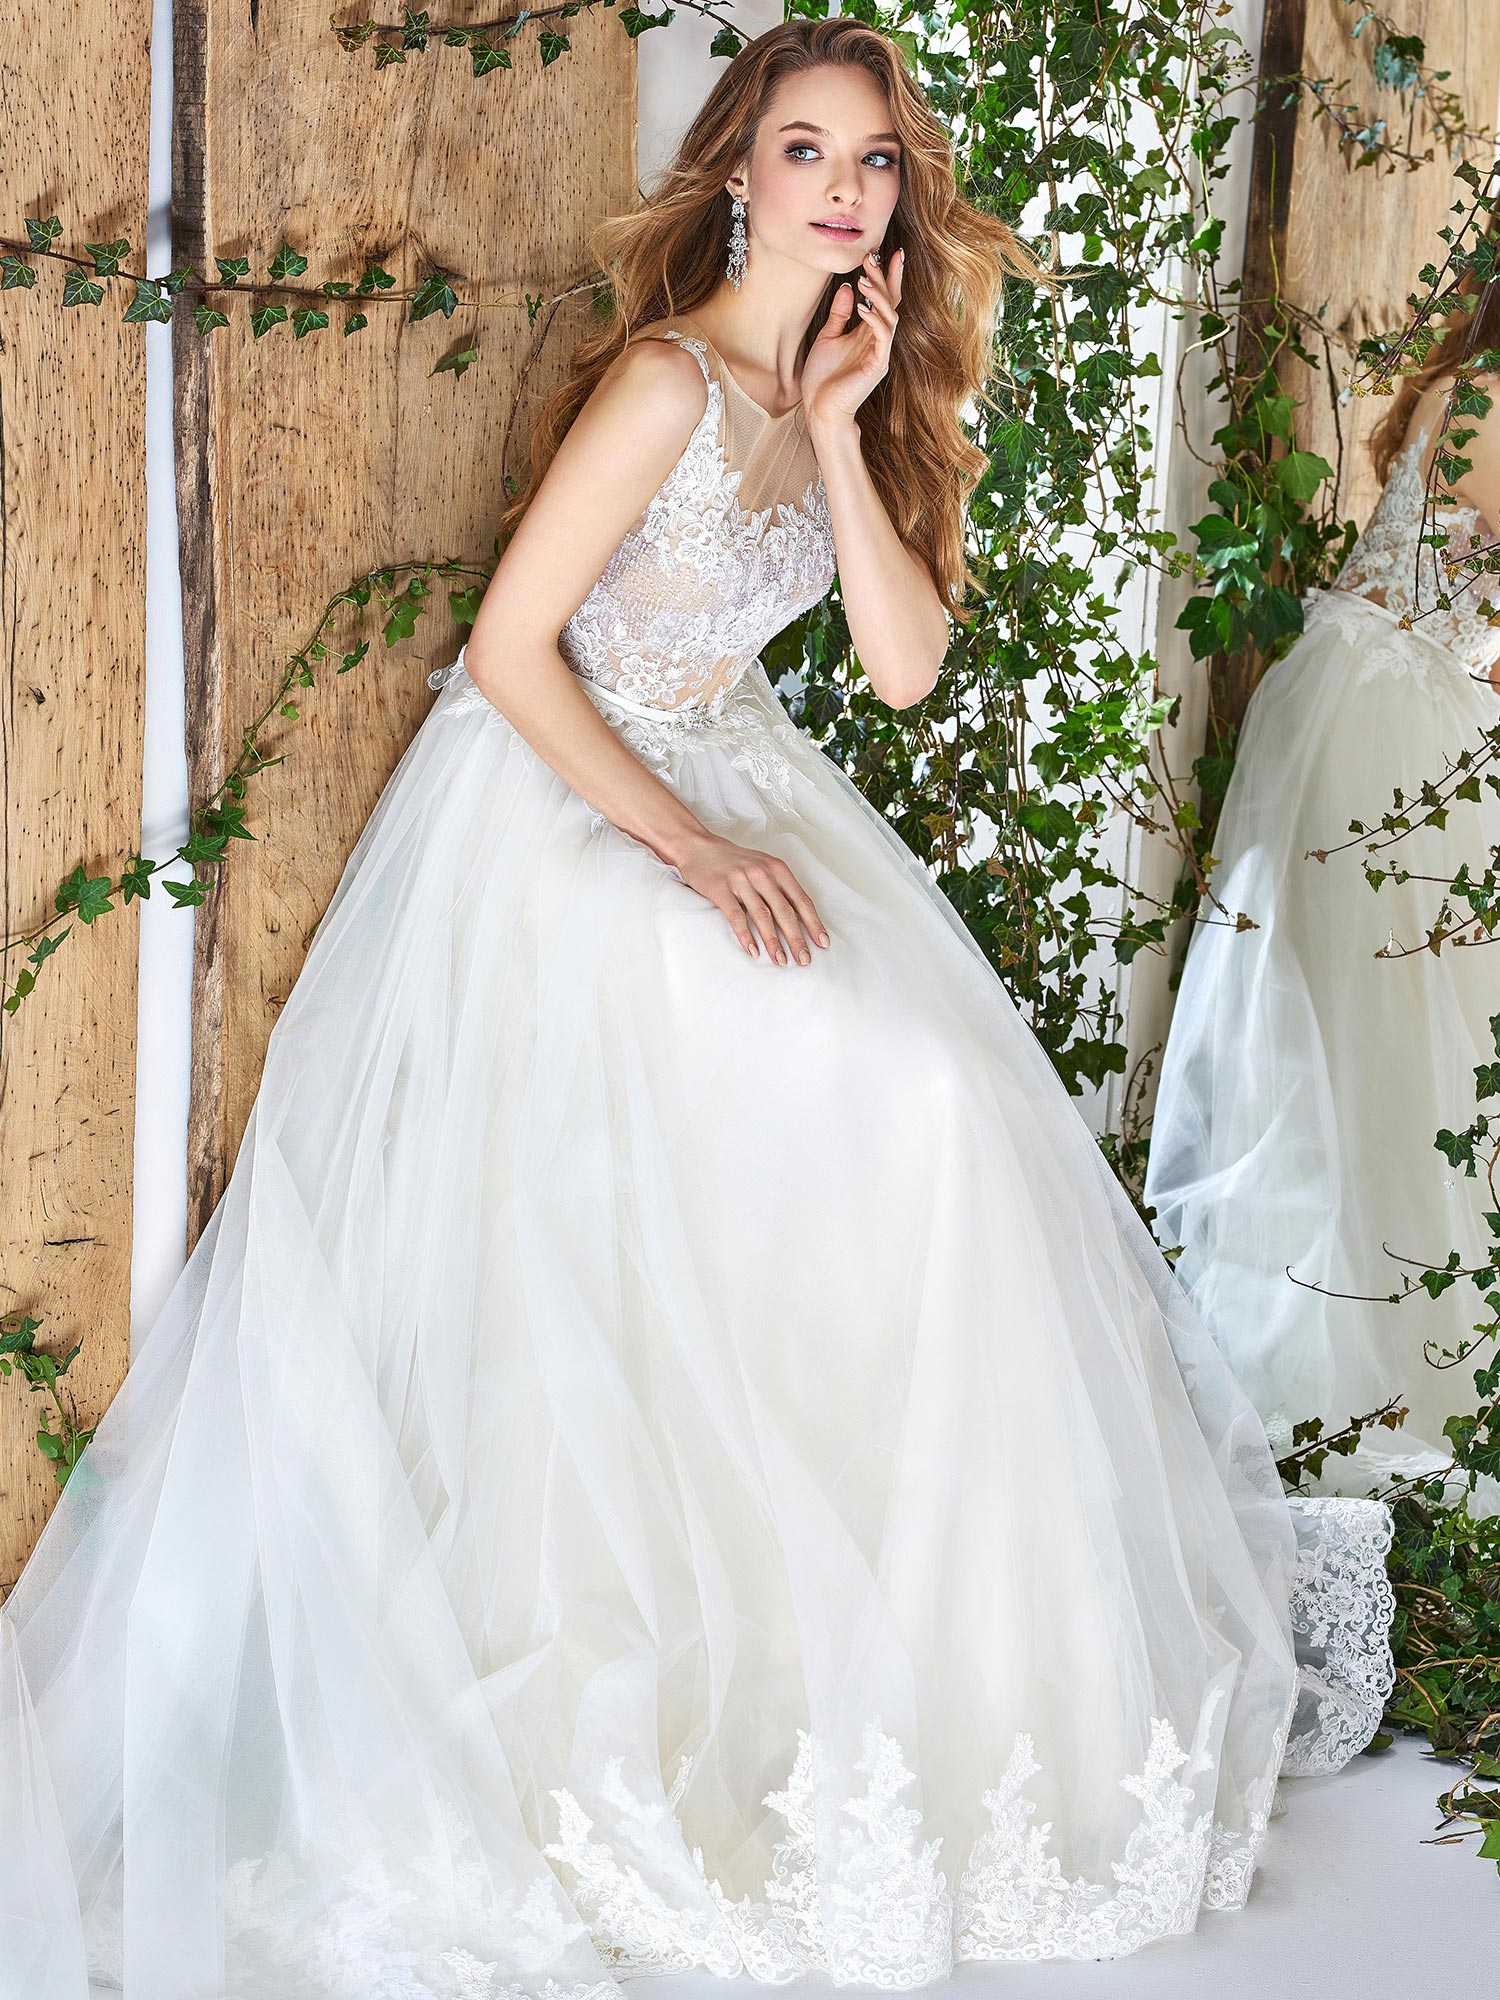 Papilio Illusion Neckline Ball Gown Wedding Dress With Scalloped